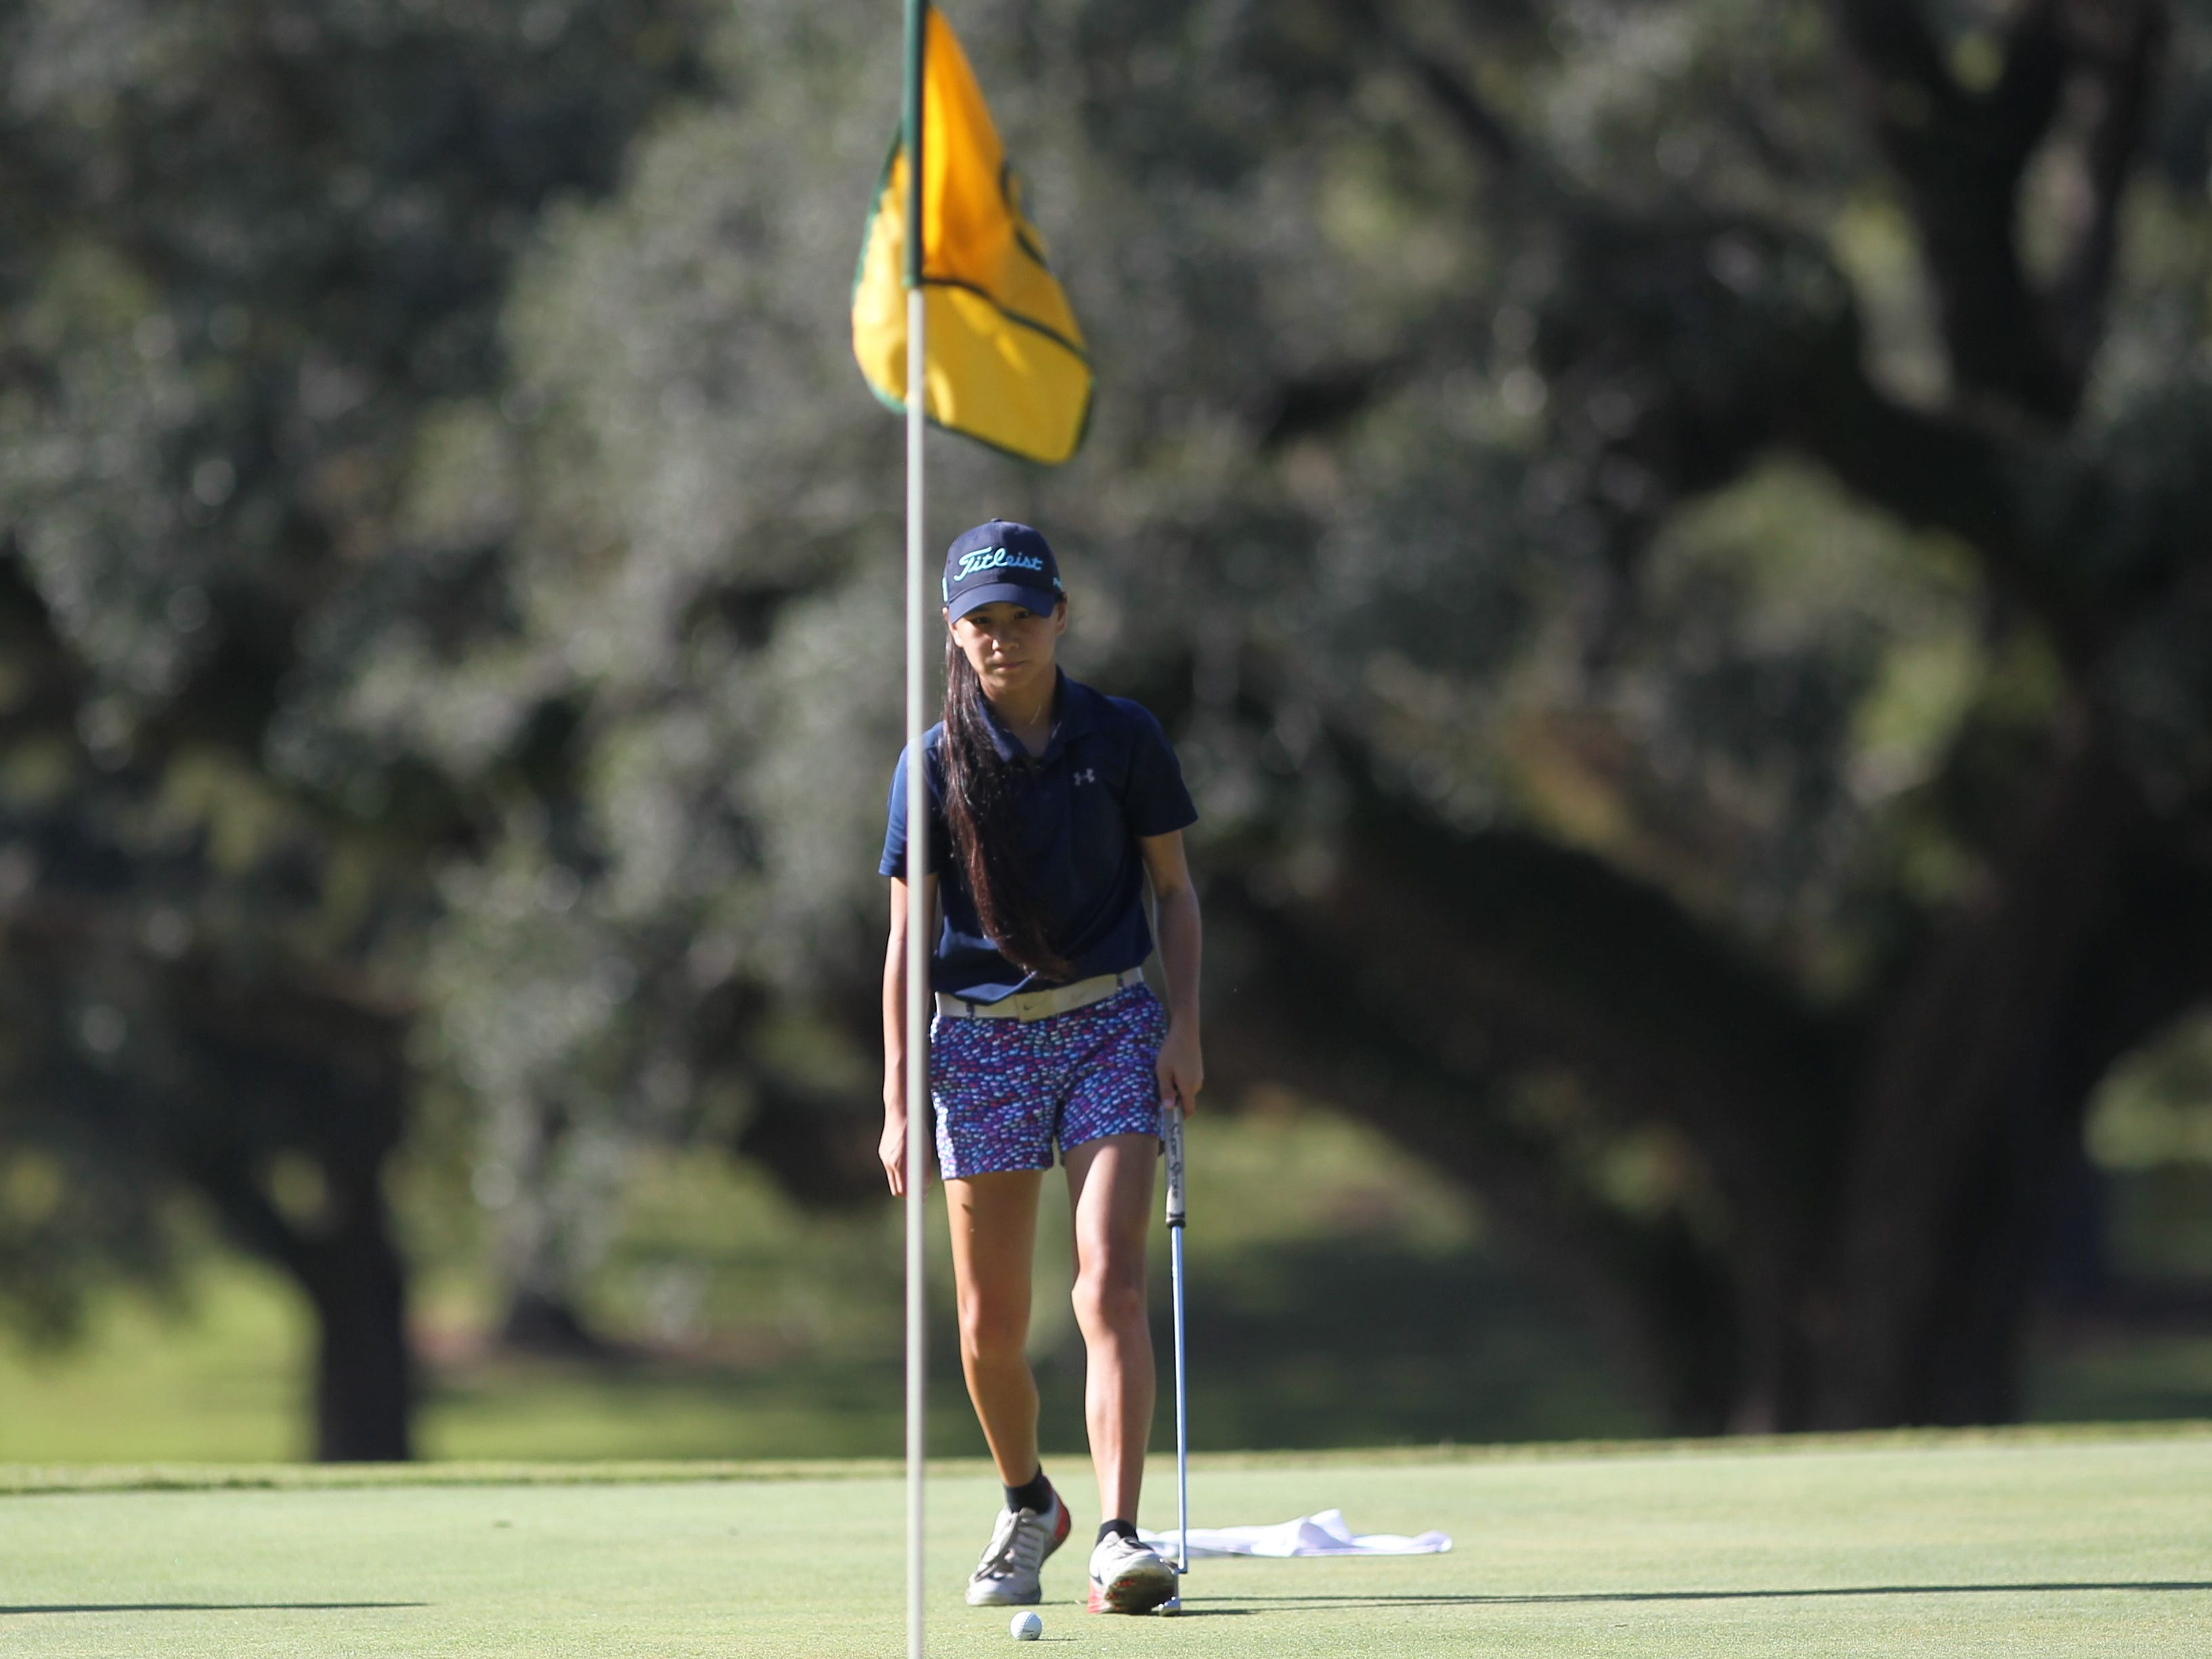 Community Christian eighth-grader Tynley Cotton plays in the girls golf Panhandle Invitational at Killearn Country Club, Oct. 4, 2018.